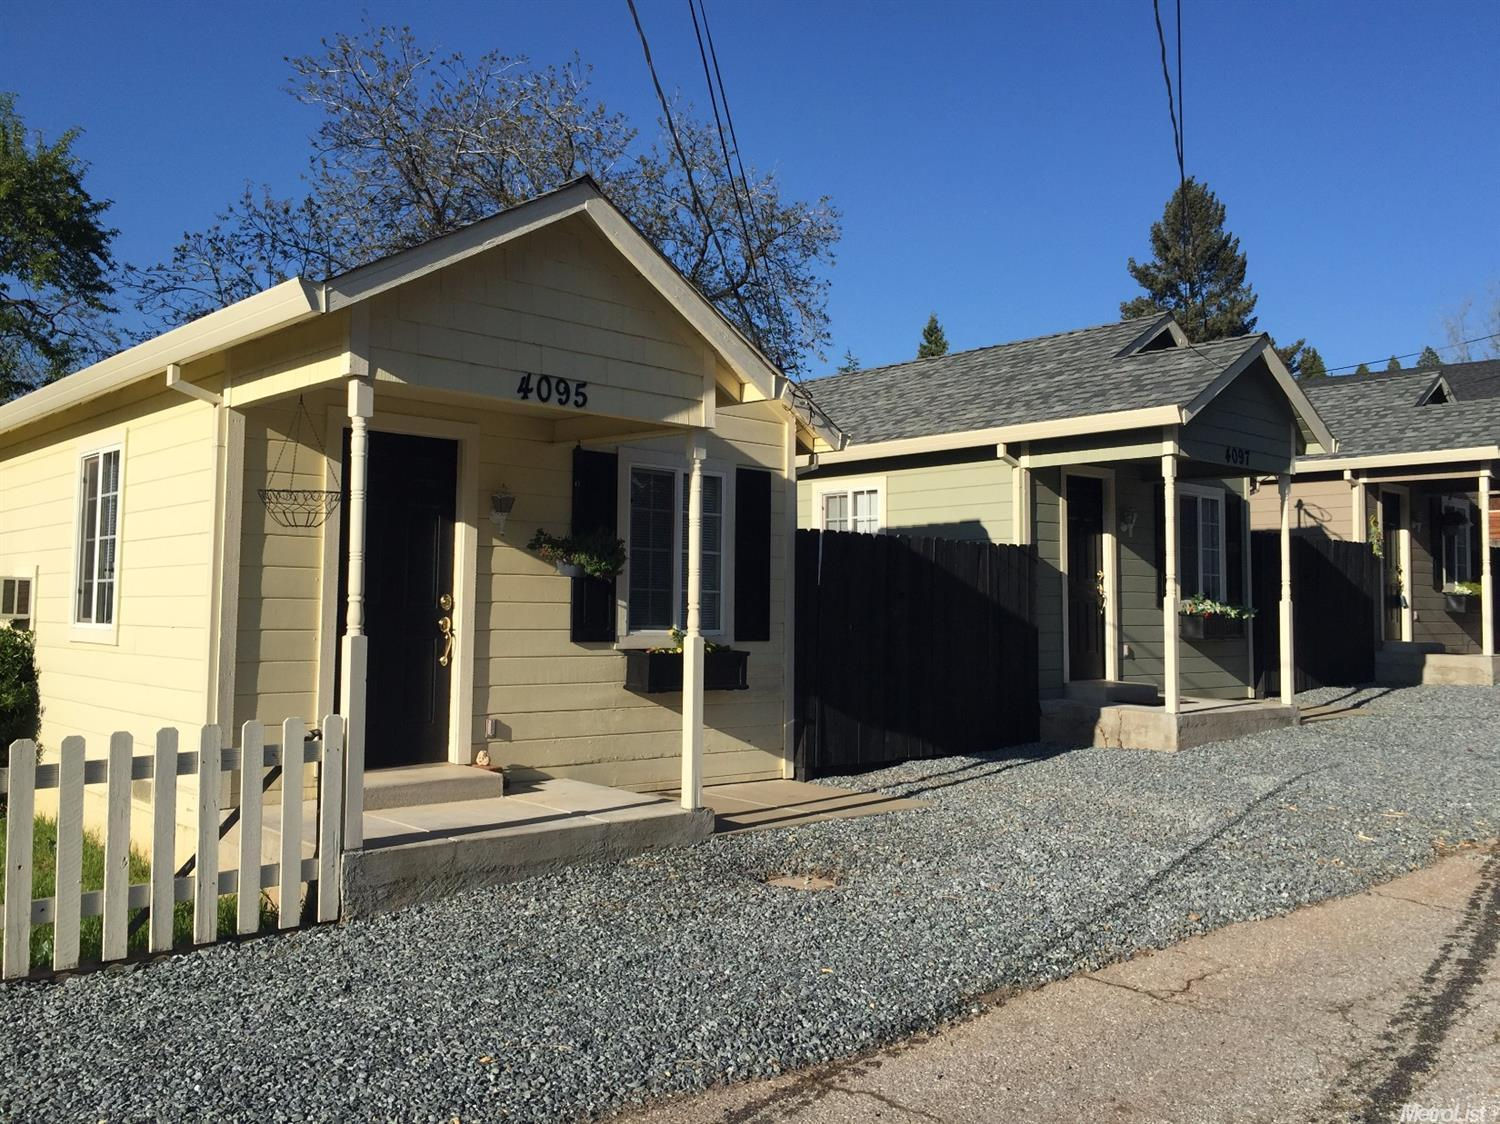 4095 2nd St Camino Ca Mls 17023226 Better Homes And